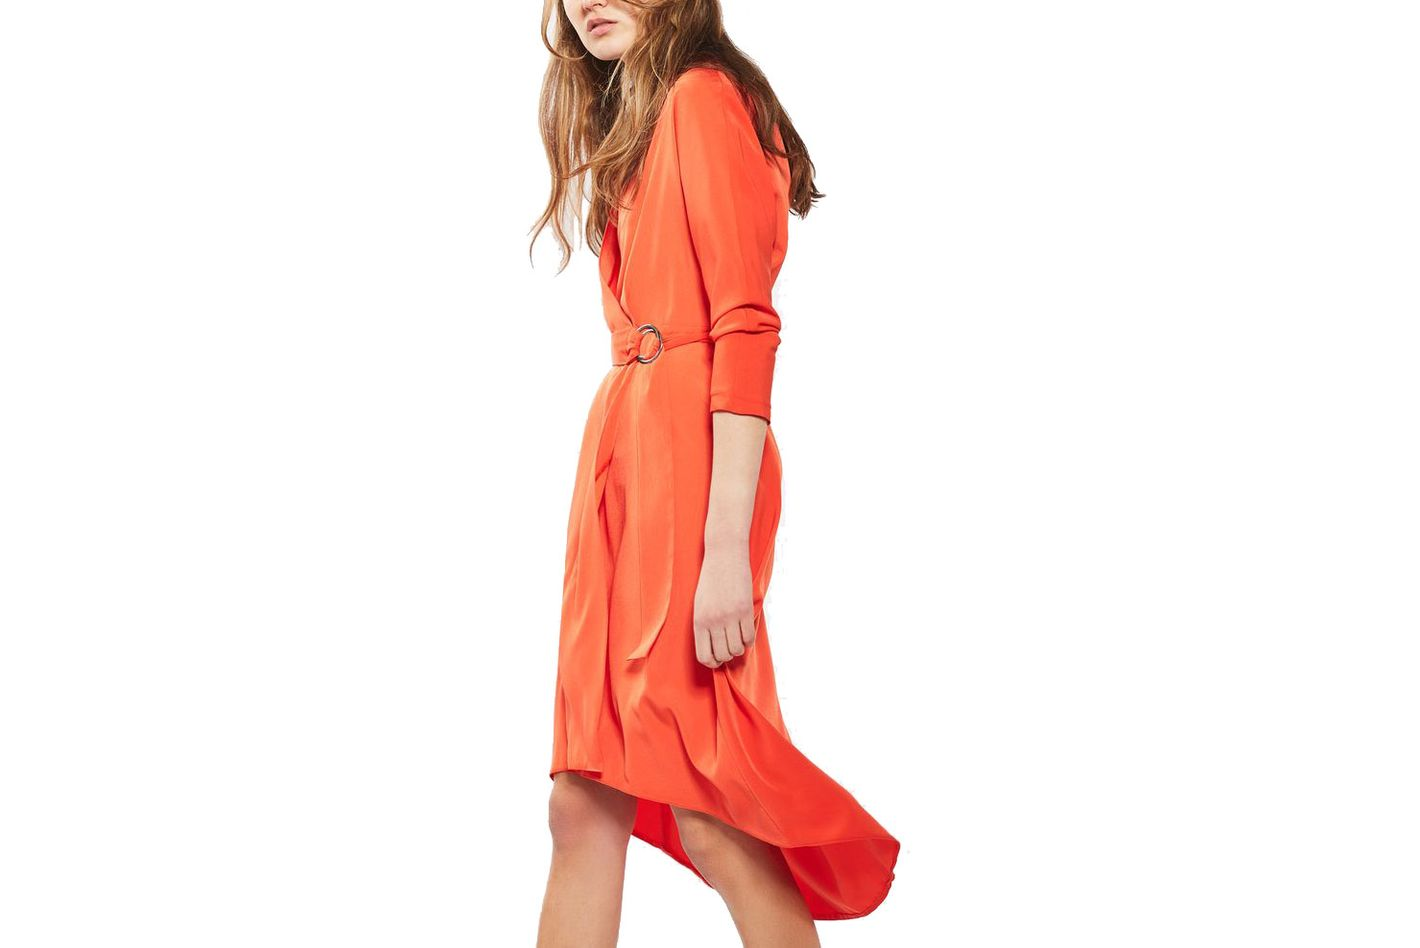 Topshop ring wrap dress